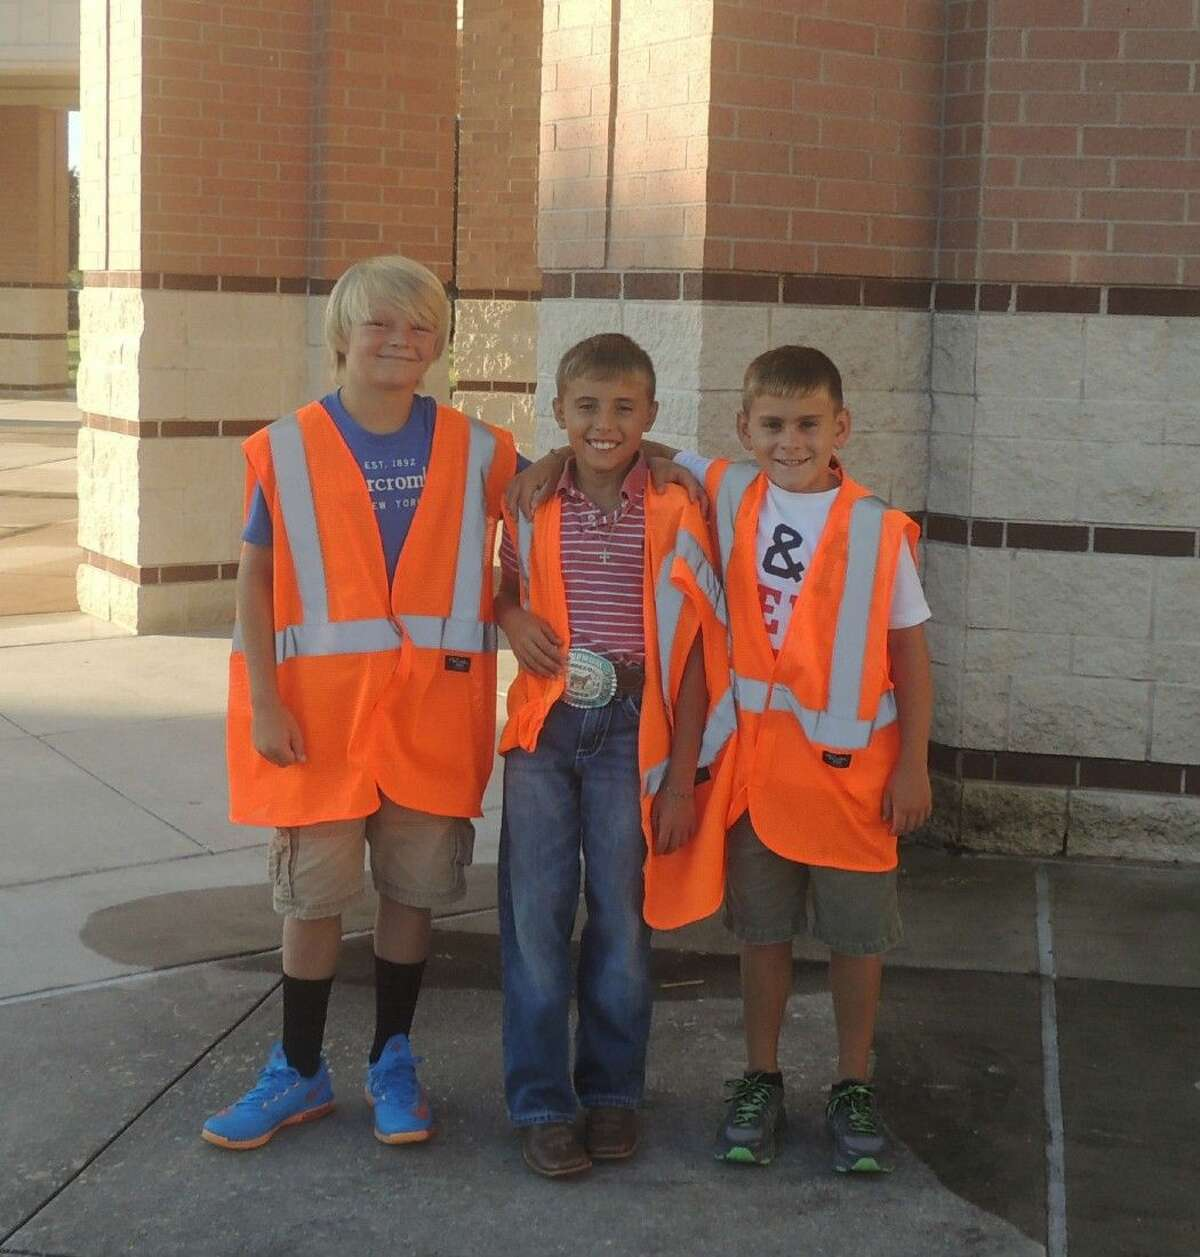 Ashton Garner, Jake Williams, and Nick Kopecky welcome students, staff and visitors.